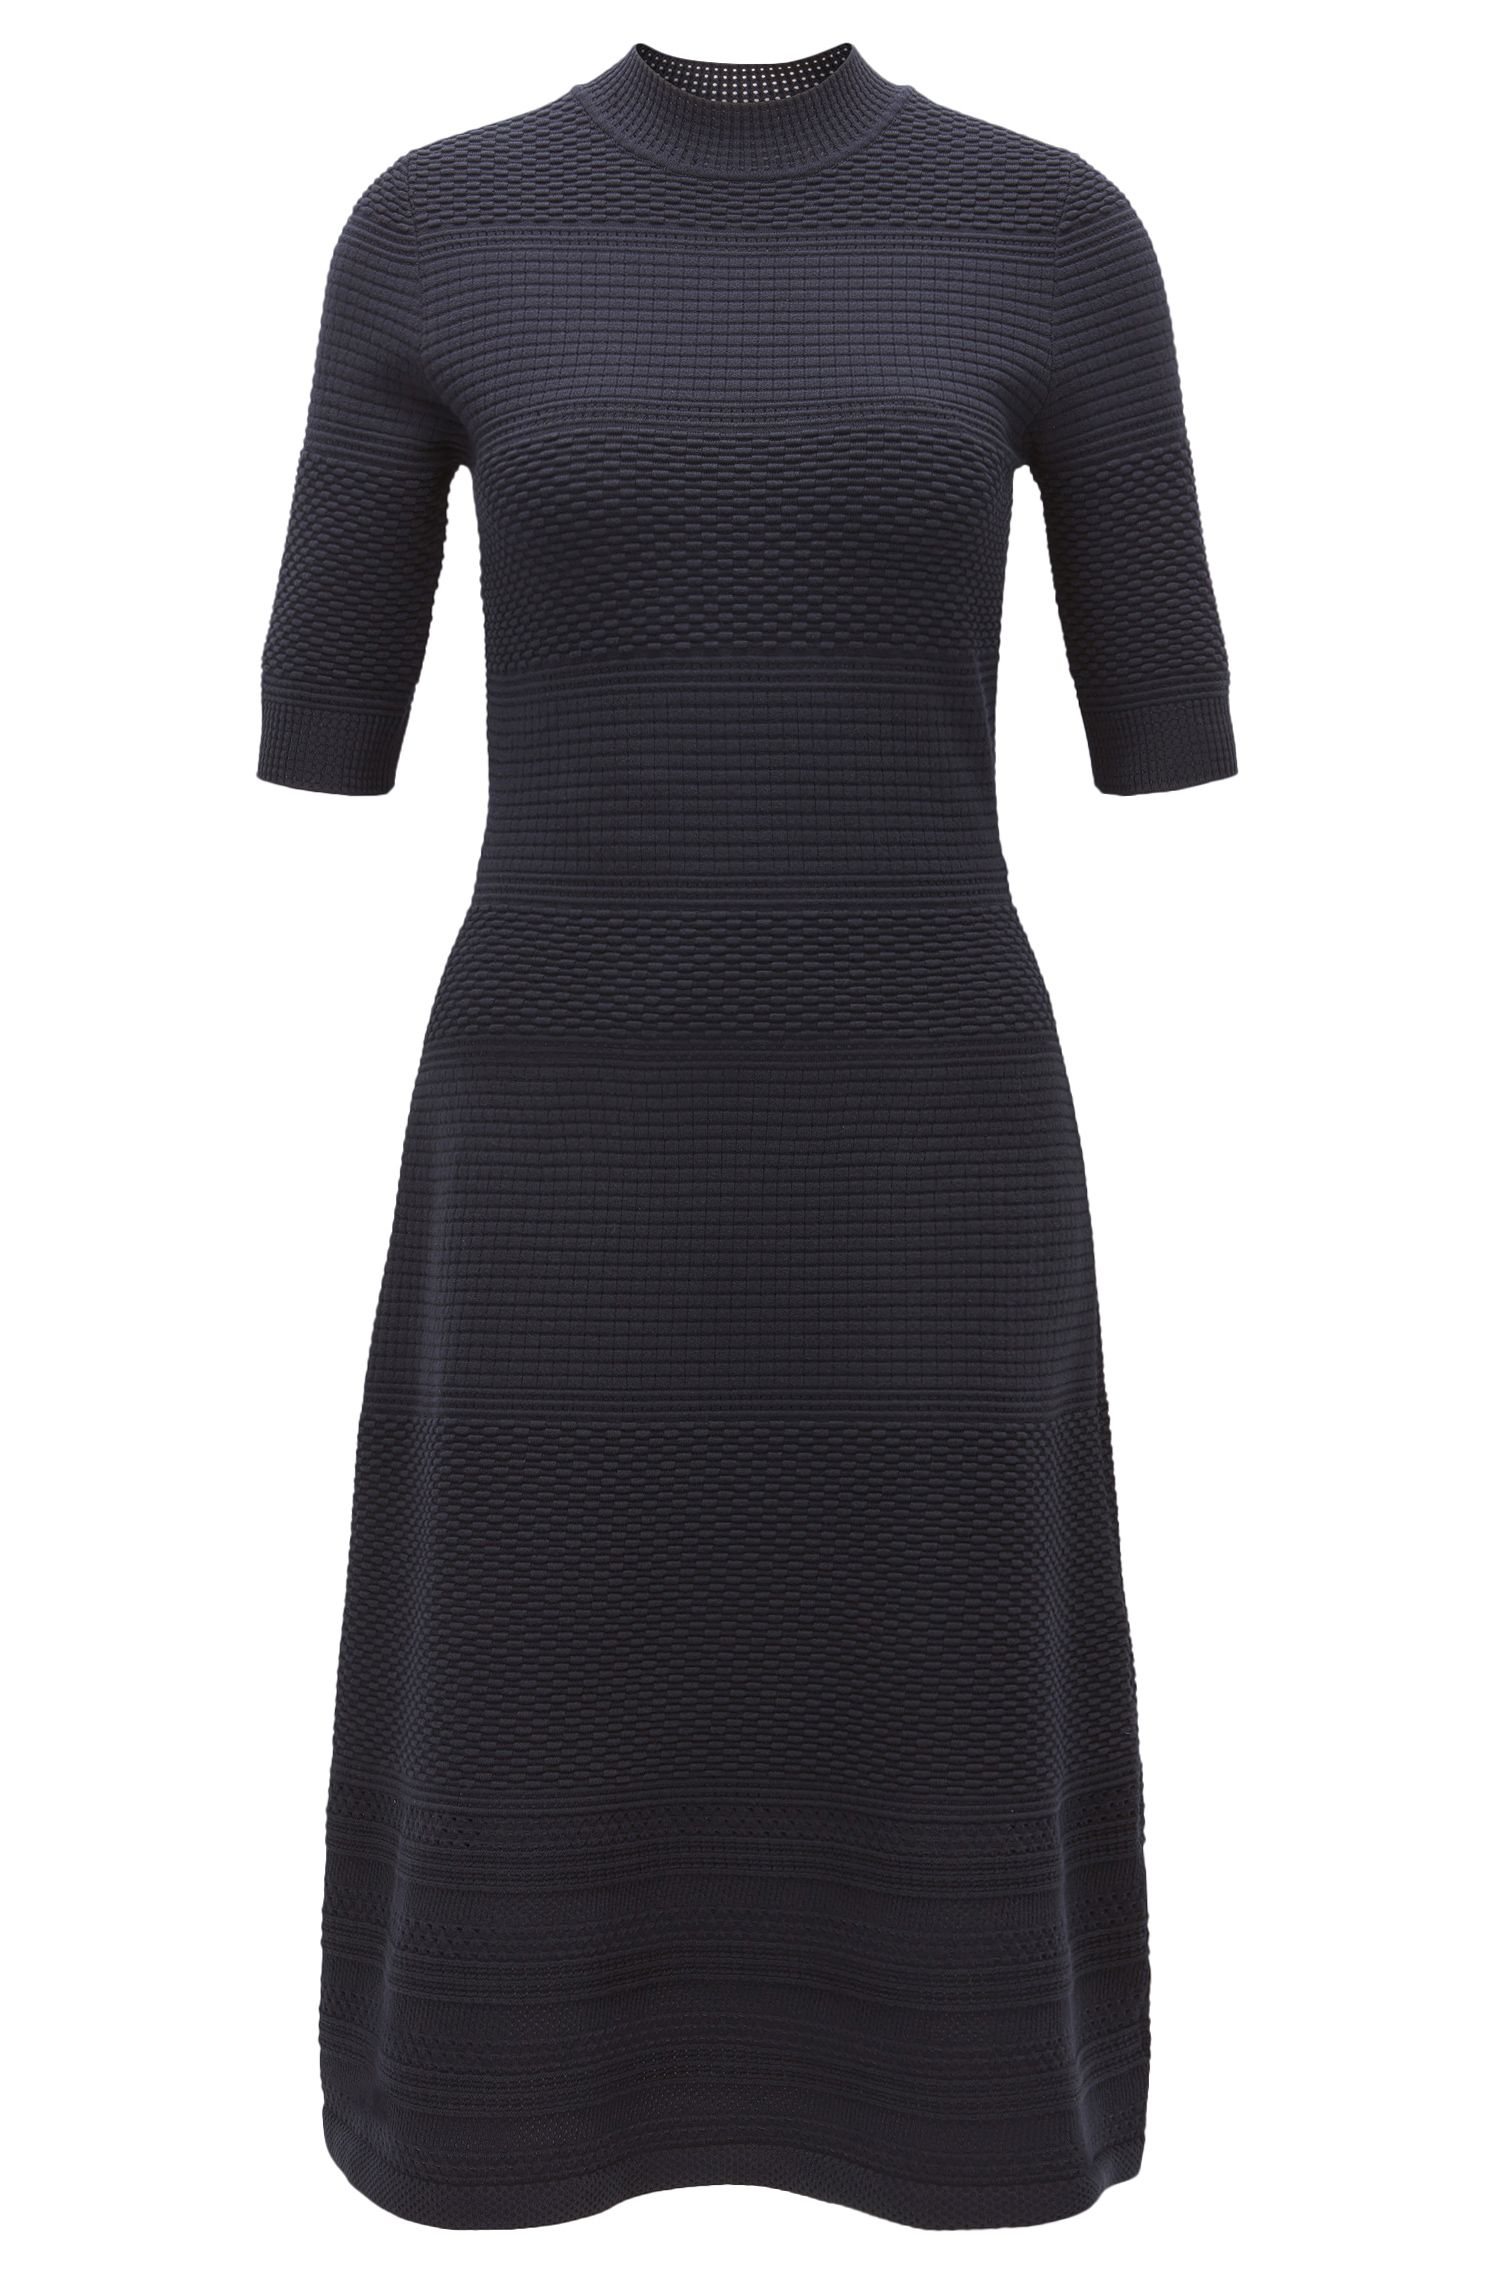 Crew-neck dress in knitted stretch fabric